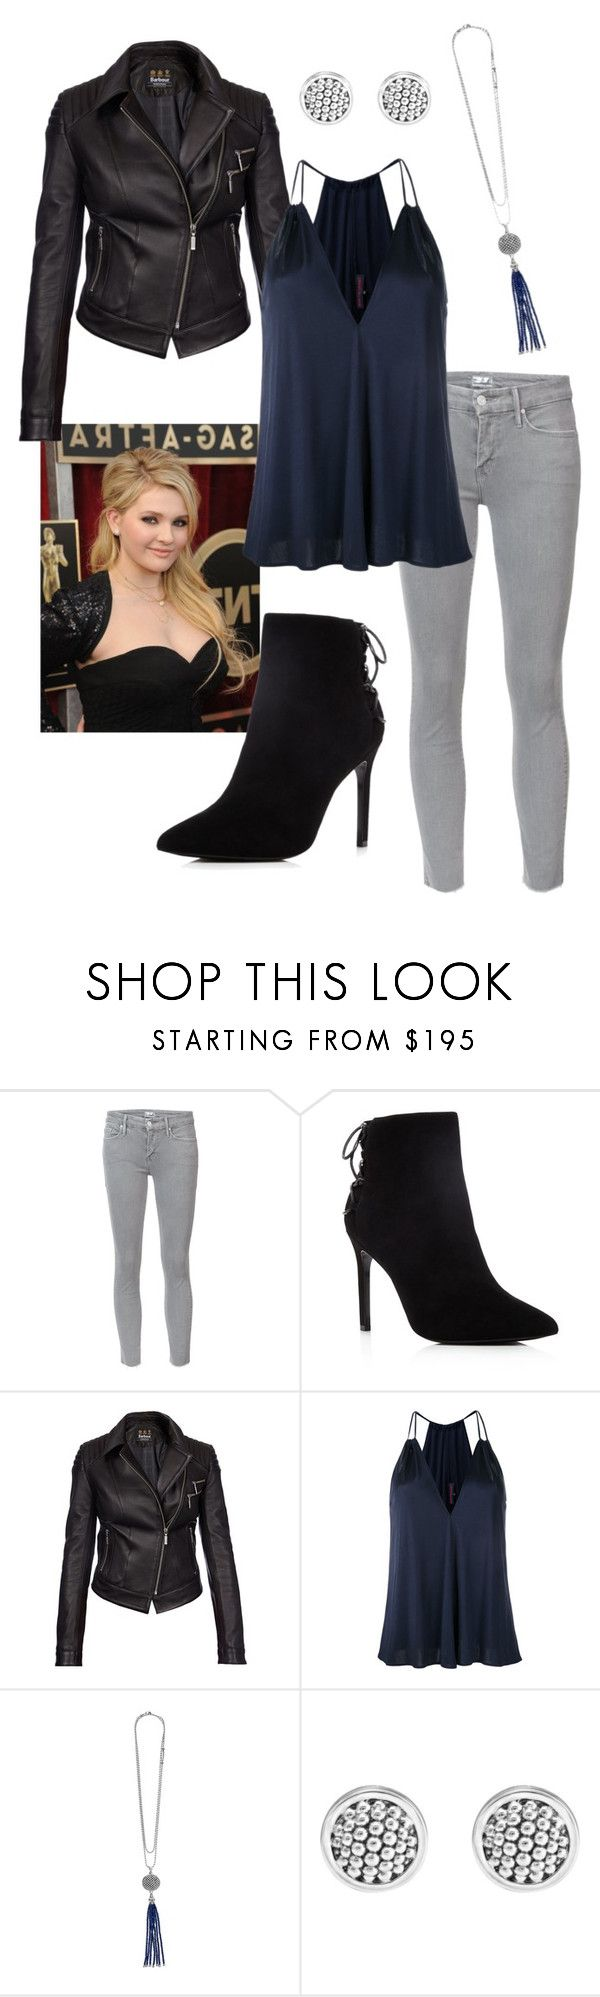 """Olivia On the Town"" by danni-foley on Polyvore featuring Mother, Charles David, Barbour International and Martin Grant"